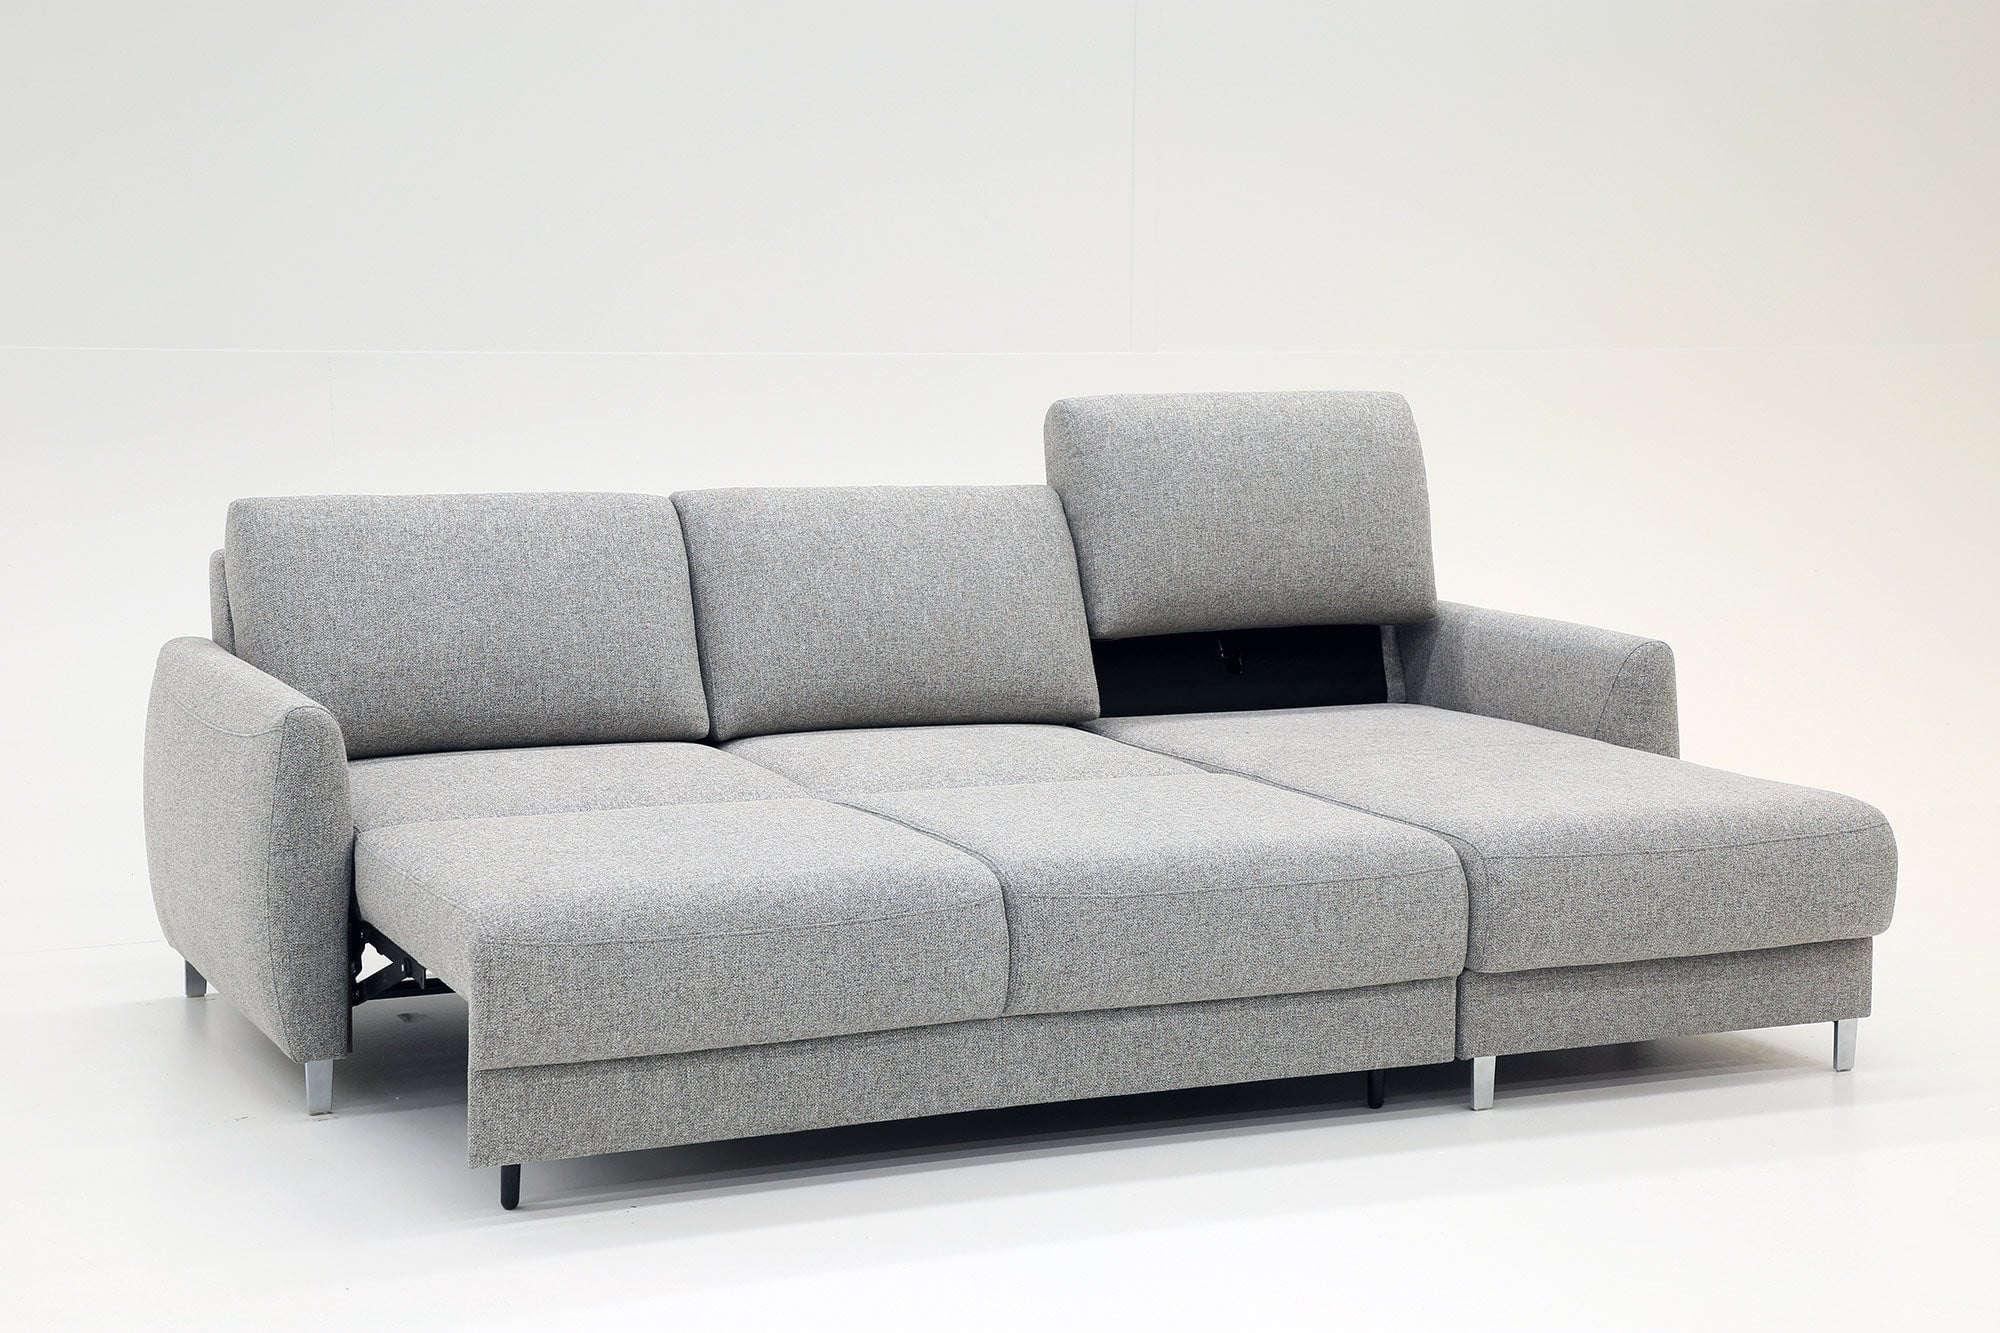 Delta Loveseat Chaise Sleeper Luonto Furniture Sofa Creations